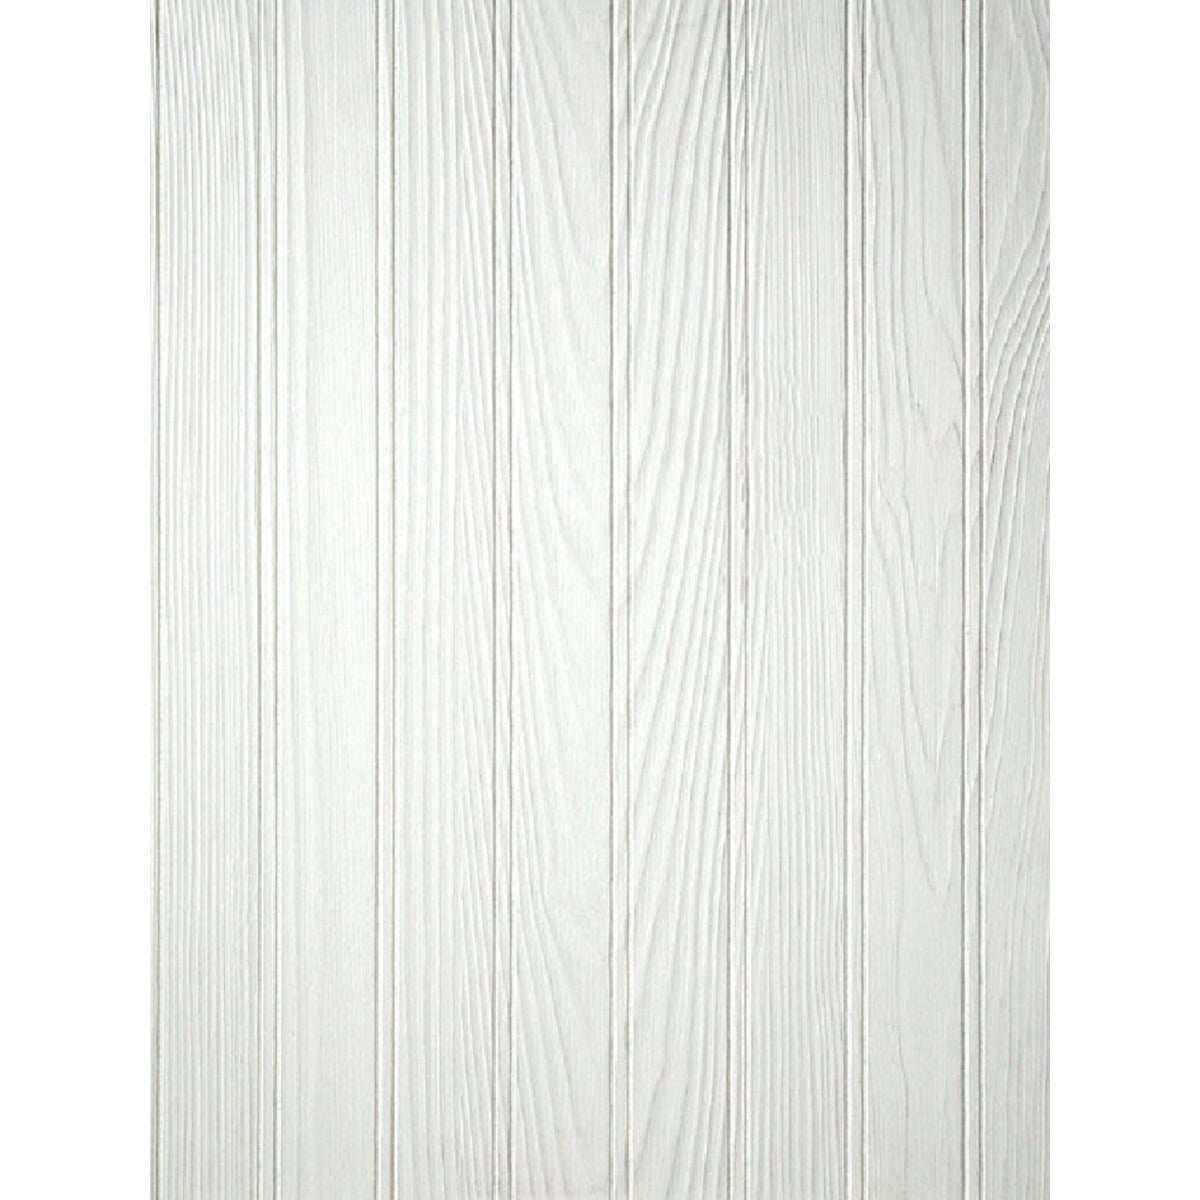 "3/16"" WH PAINTABLE PANEL"